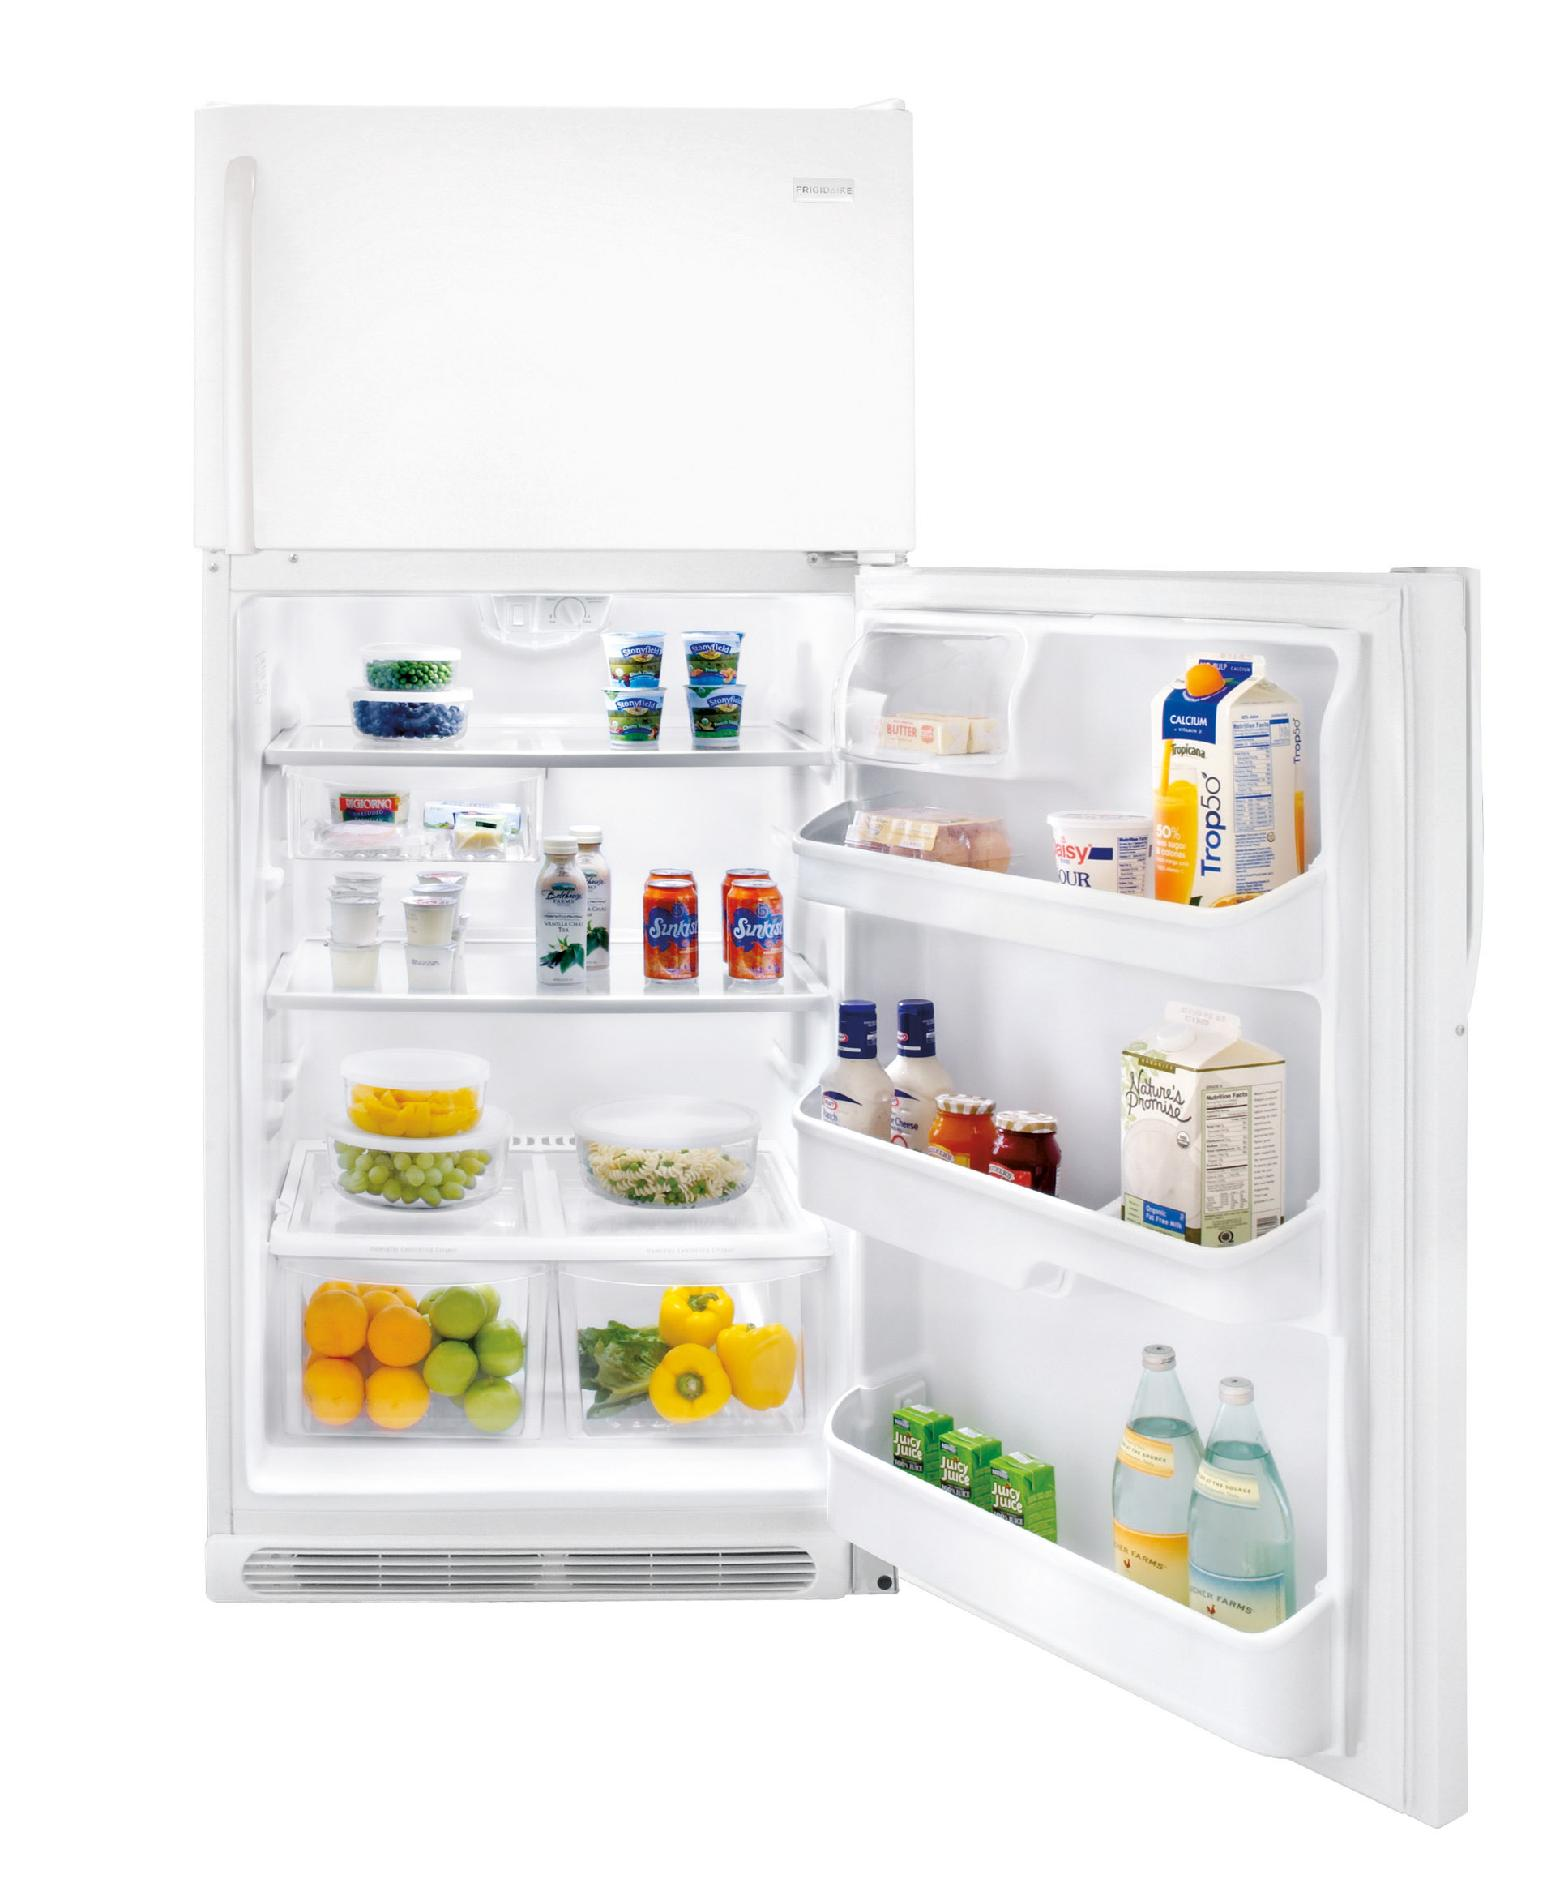 Frigidaire 18.2 cu. ft. Top-Freezer Refrigerator - White